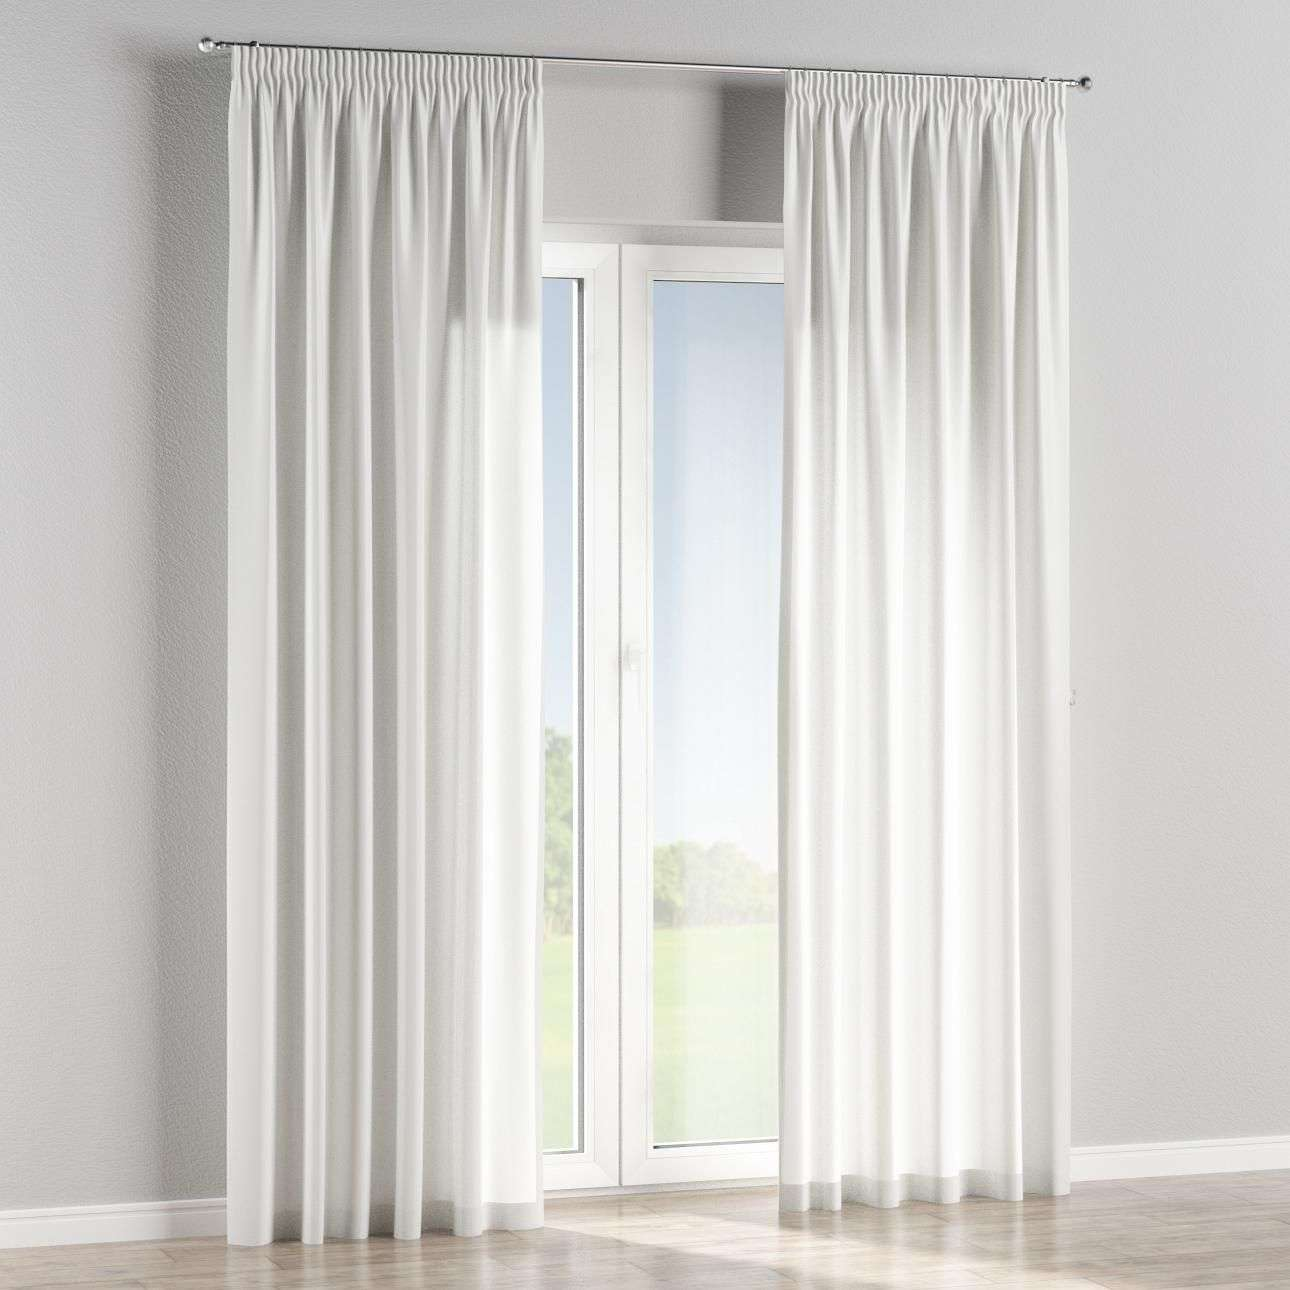 Pencil pleat curtains in collection Rustica, fabric: 138-21